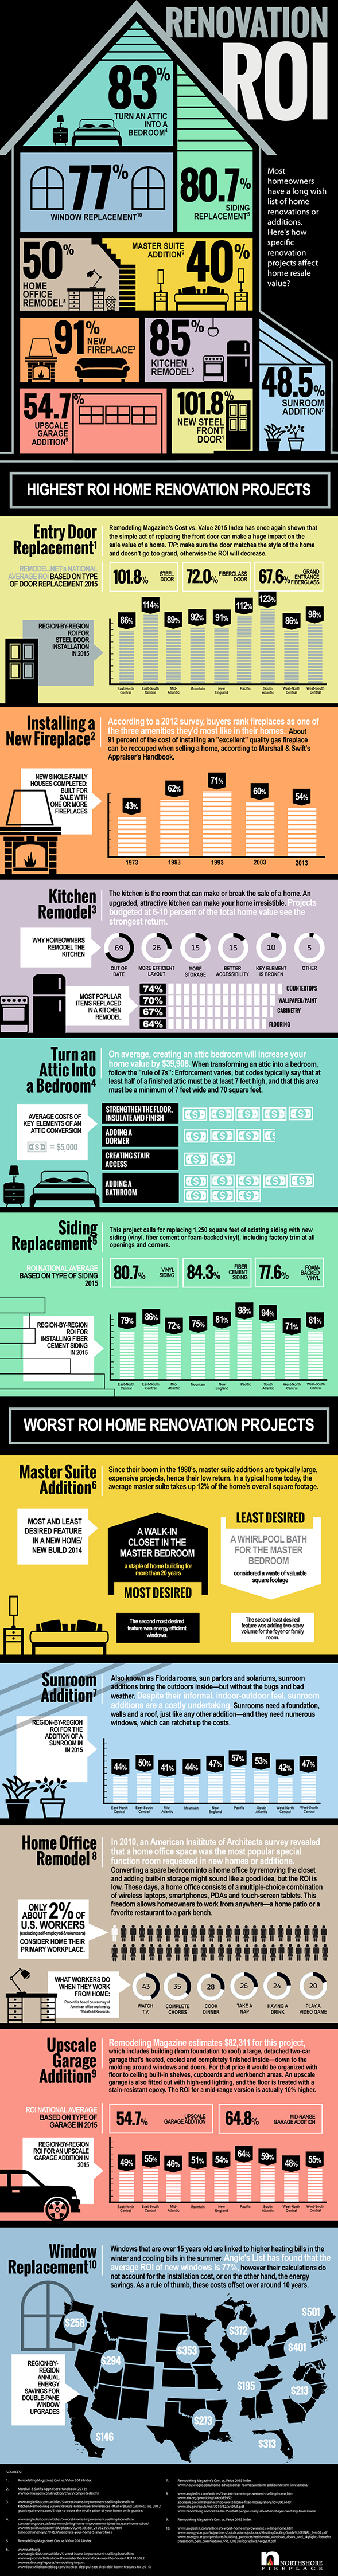 Renovation_ROI_Info